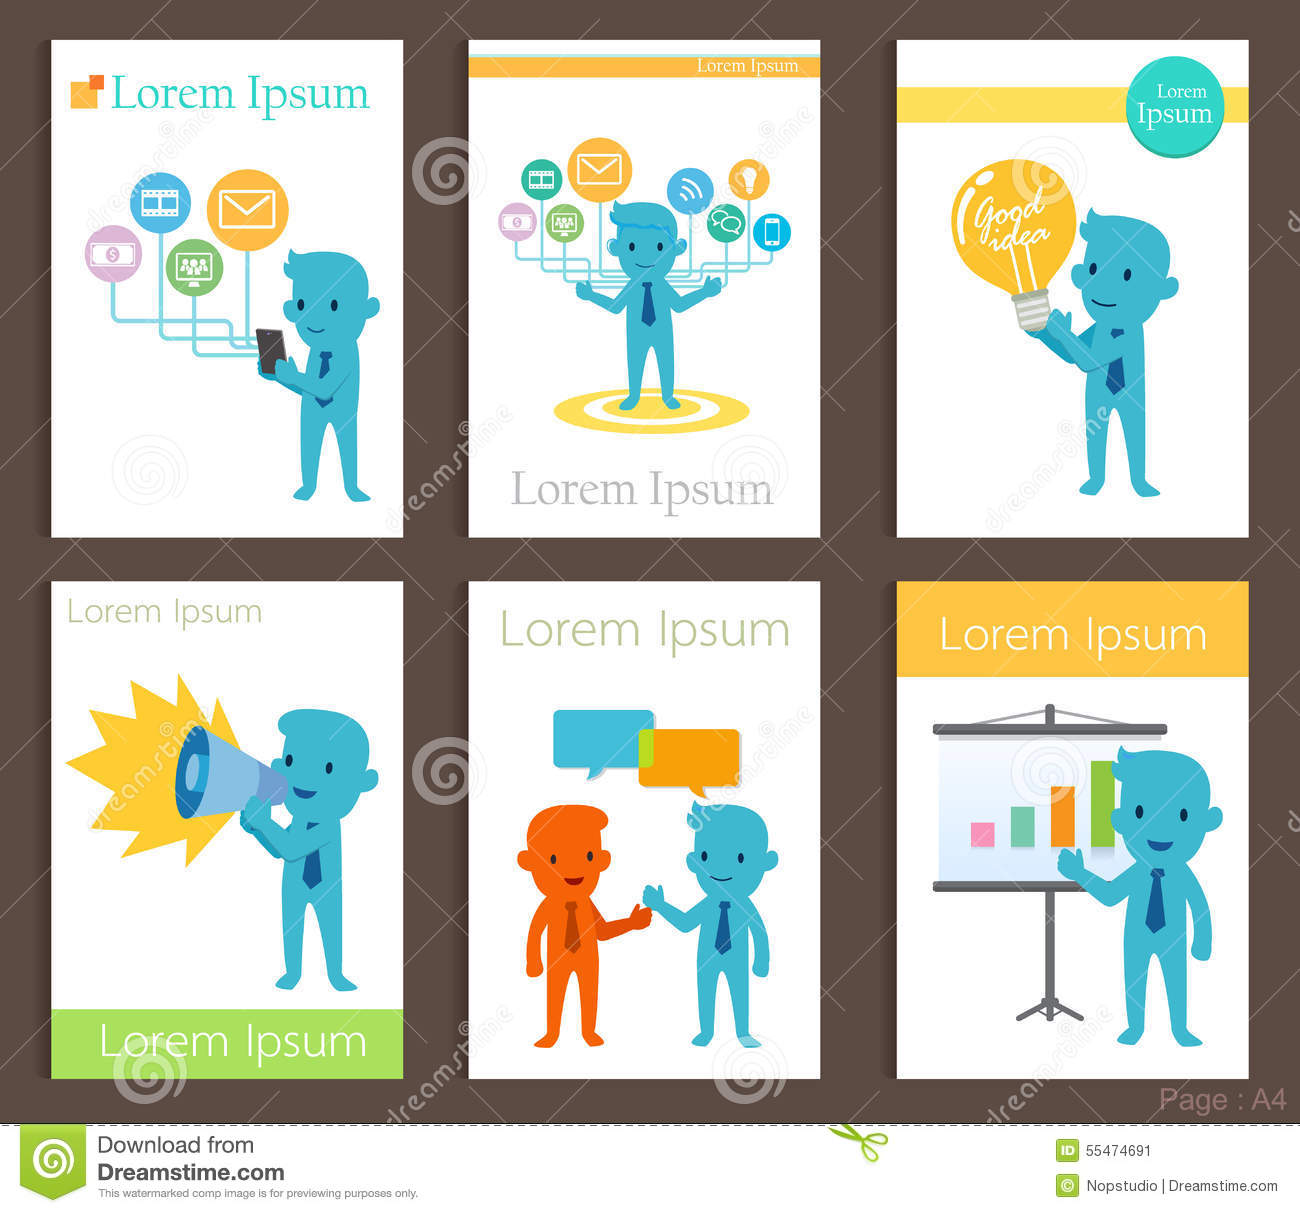 Set of brochure design business communication templates stock vector set of brochure design business communication templates stock vector illustration of entertainment background 55474691 accmission